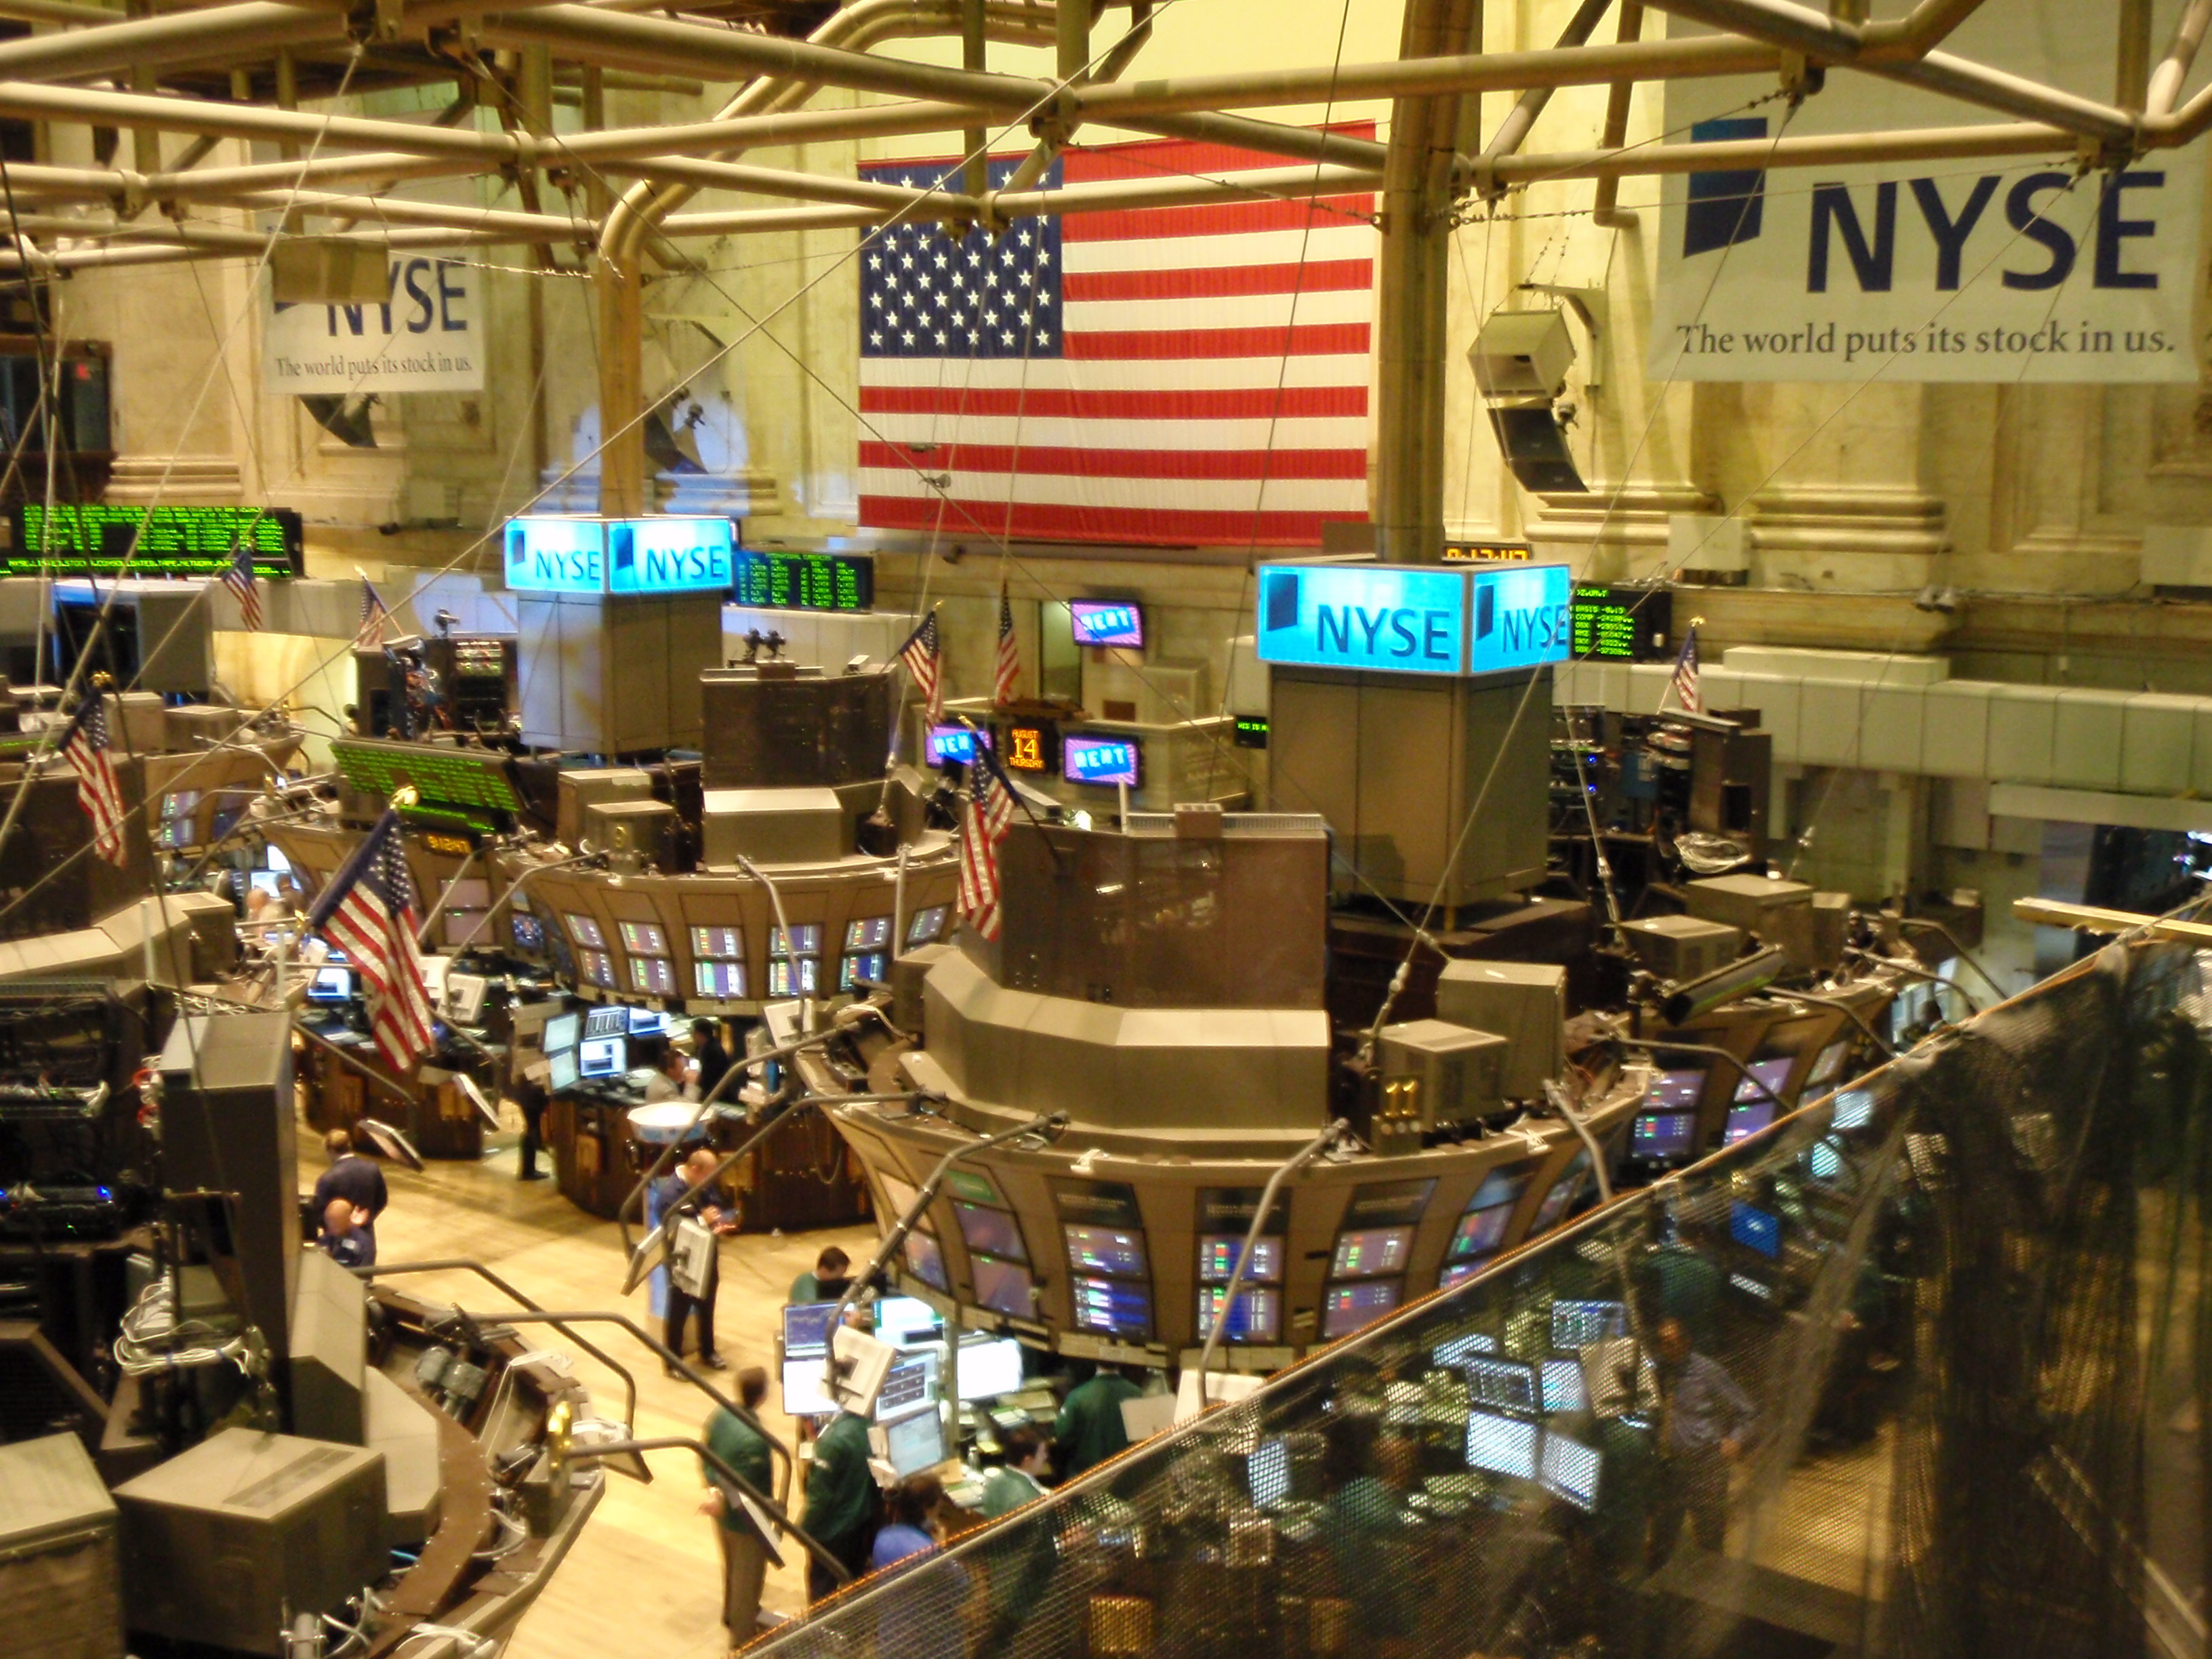 PokerStars, Amaya Gaming, New York Stock Exchange